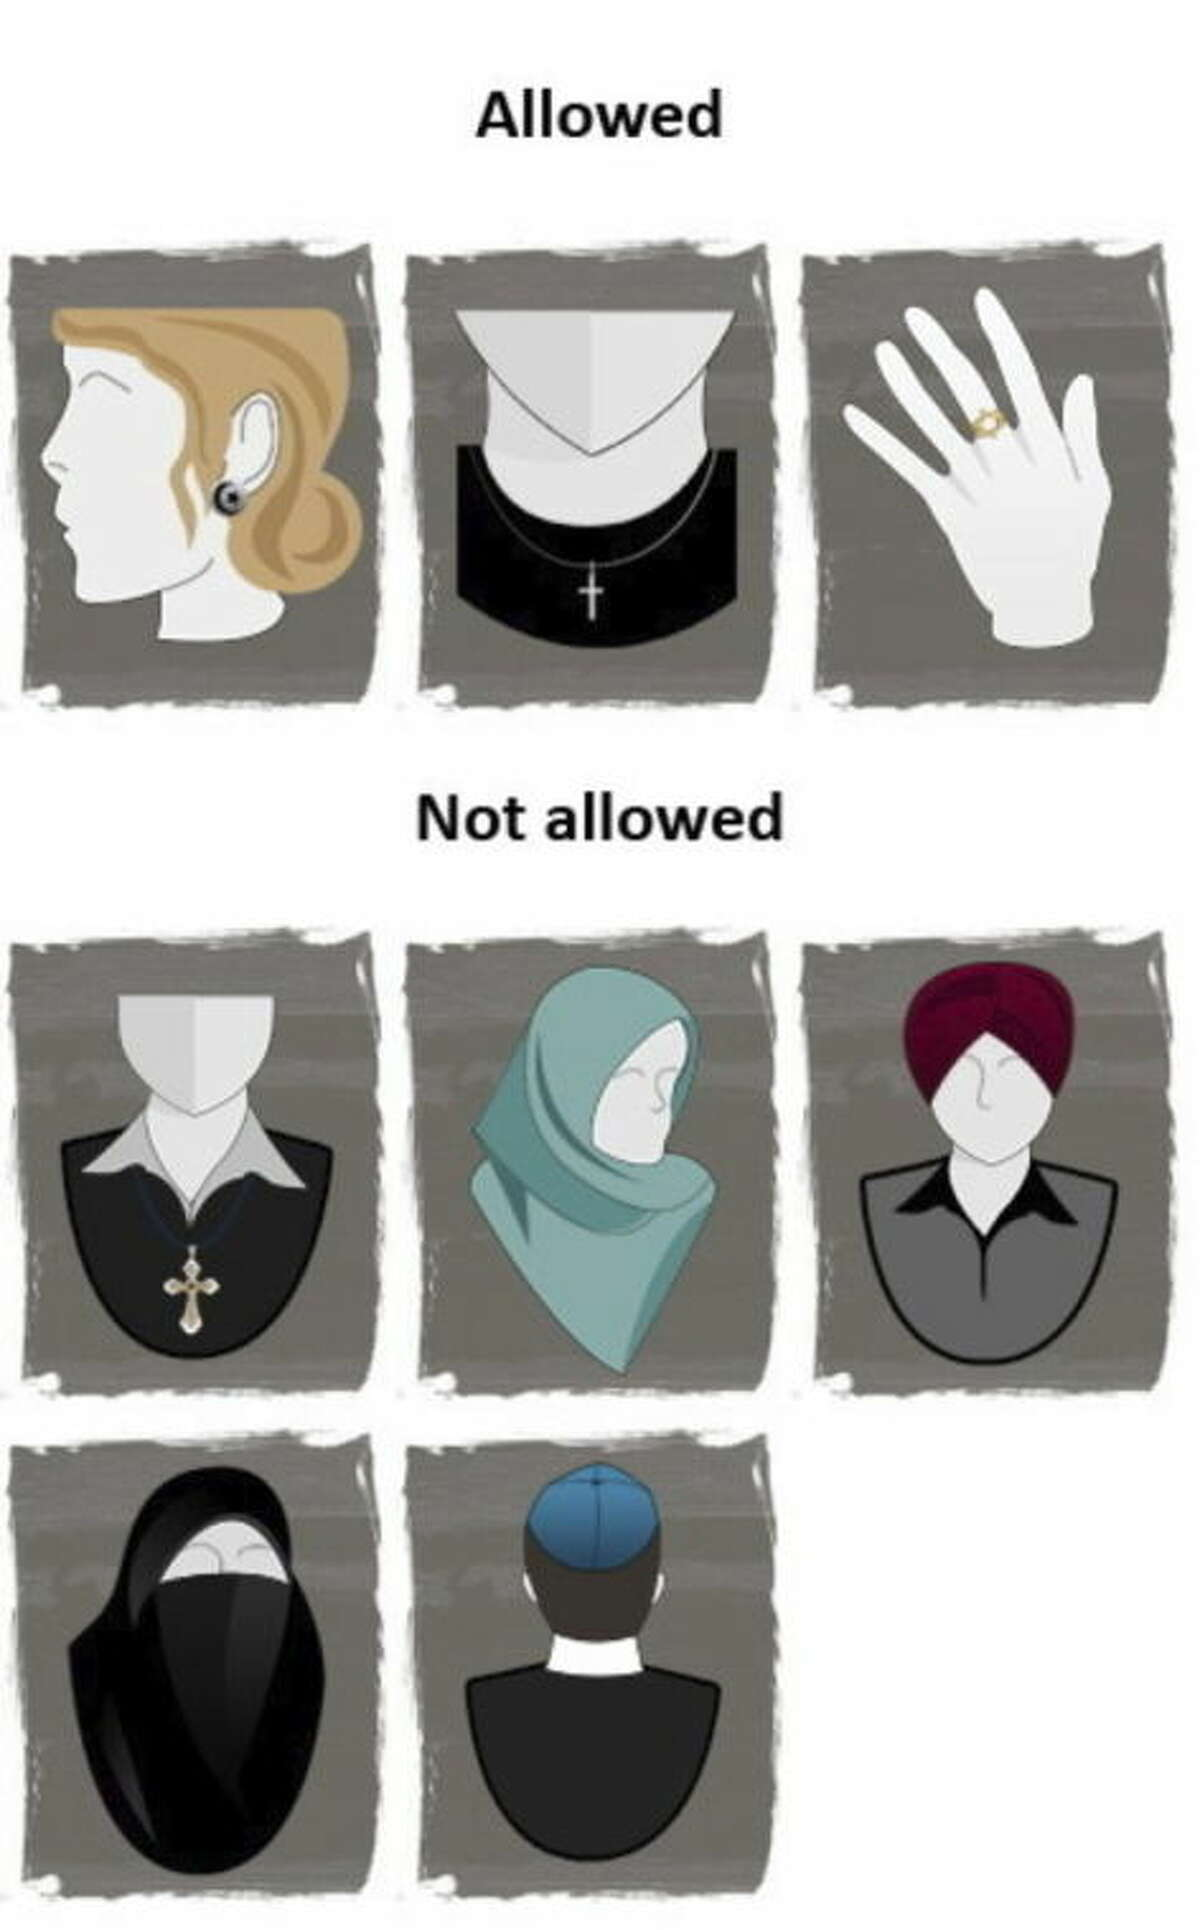 """This image released in September 2013 by the Quebec government shows a proposal for types of religious clothing allowed and not allowed for public workers, under Quebec's proposed """"charter of values."""" (AP Photo/The Canadian Press, Gouvernement du Québec)"""